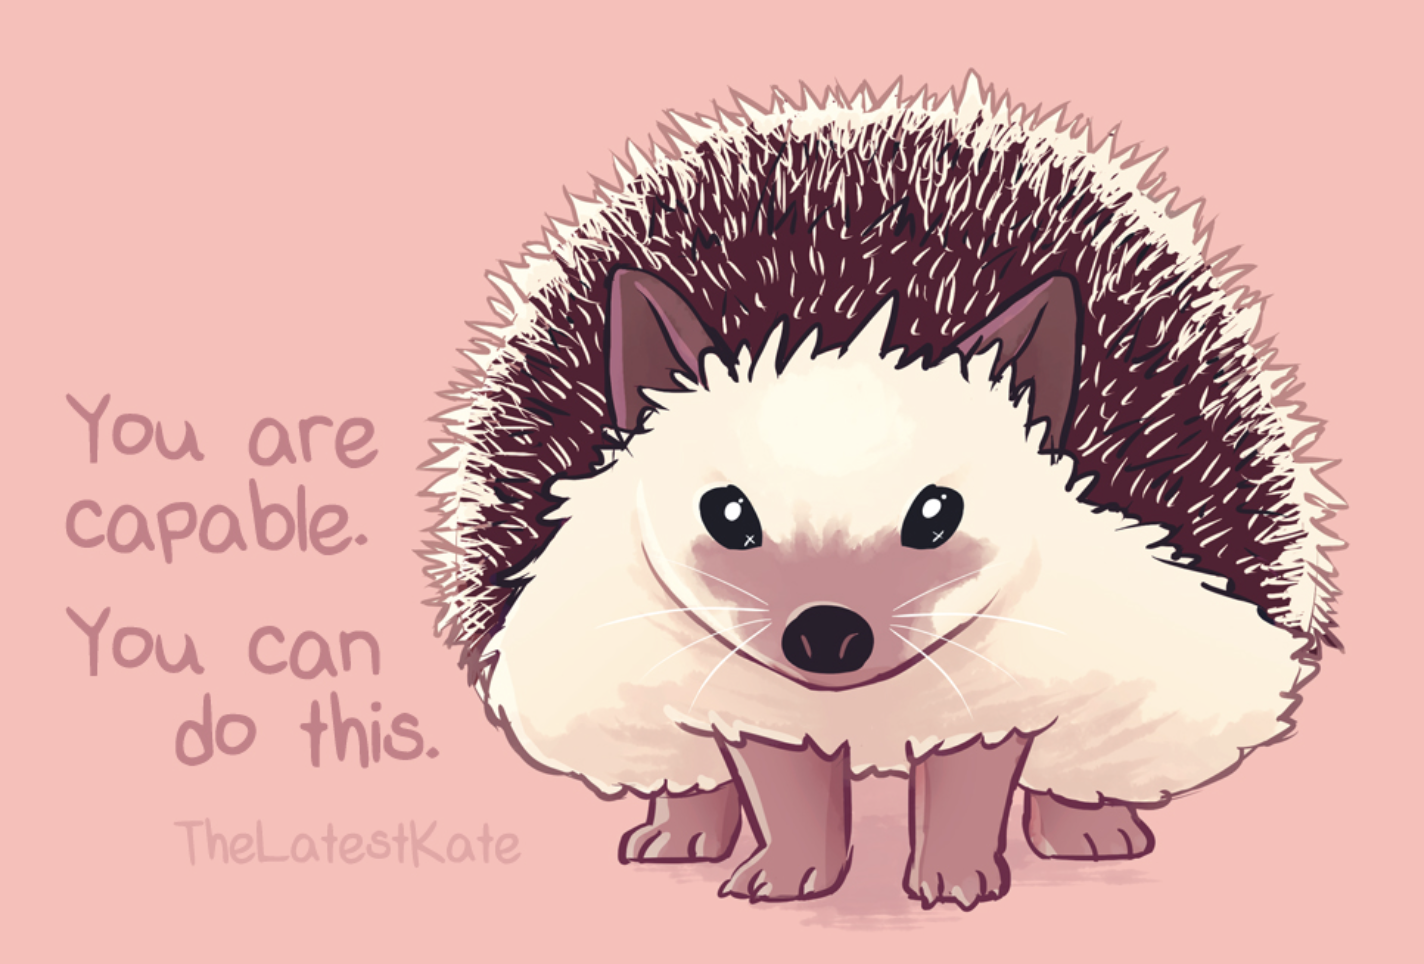 [Image] Wholesome hedgehog